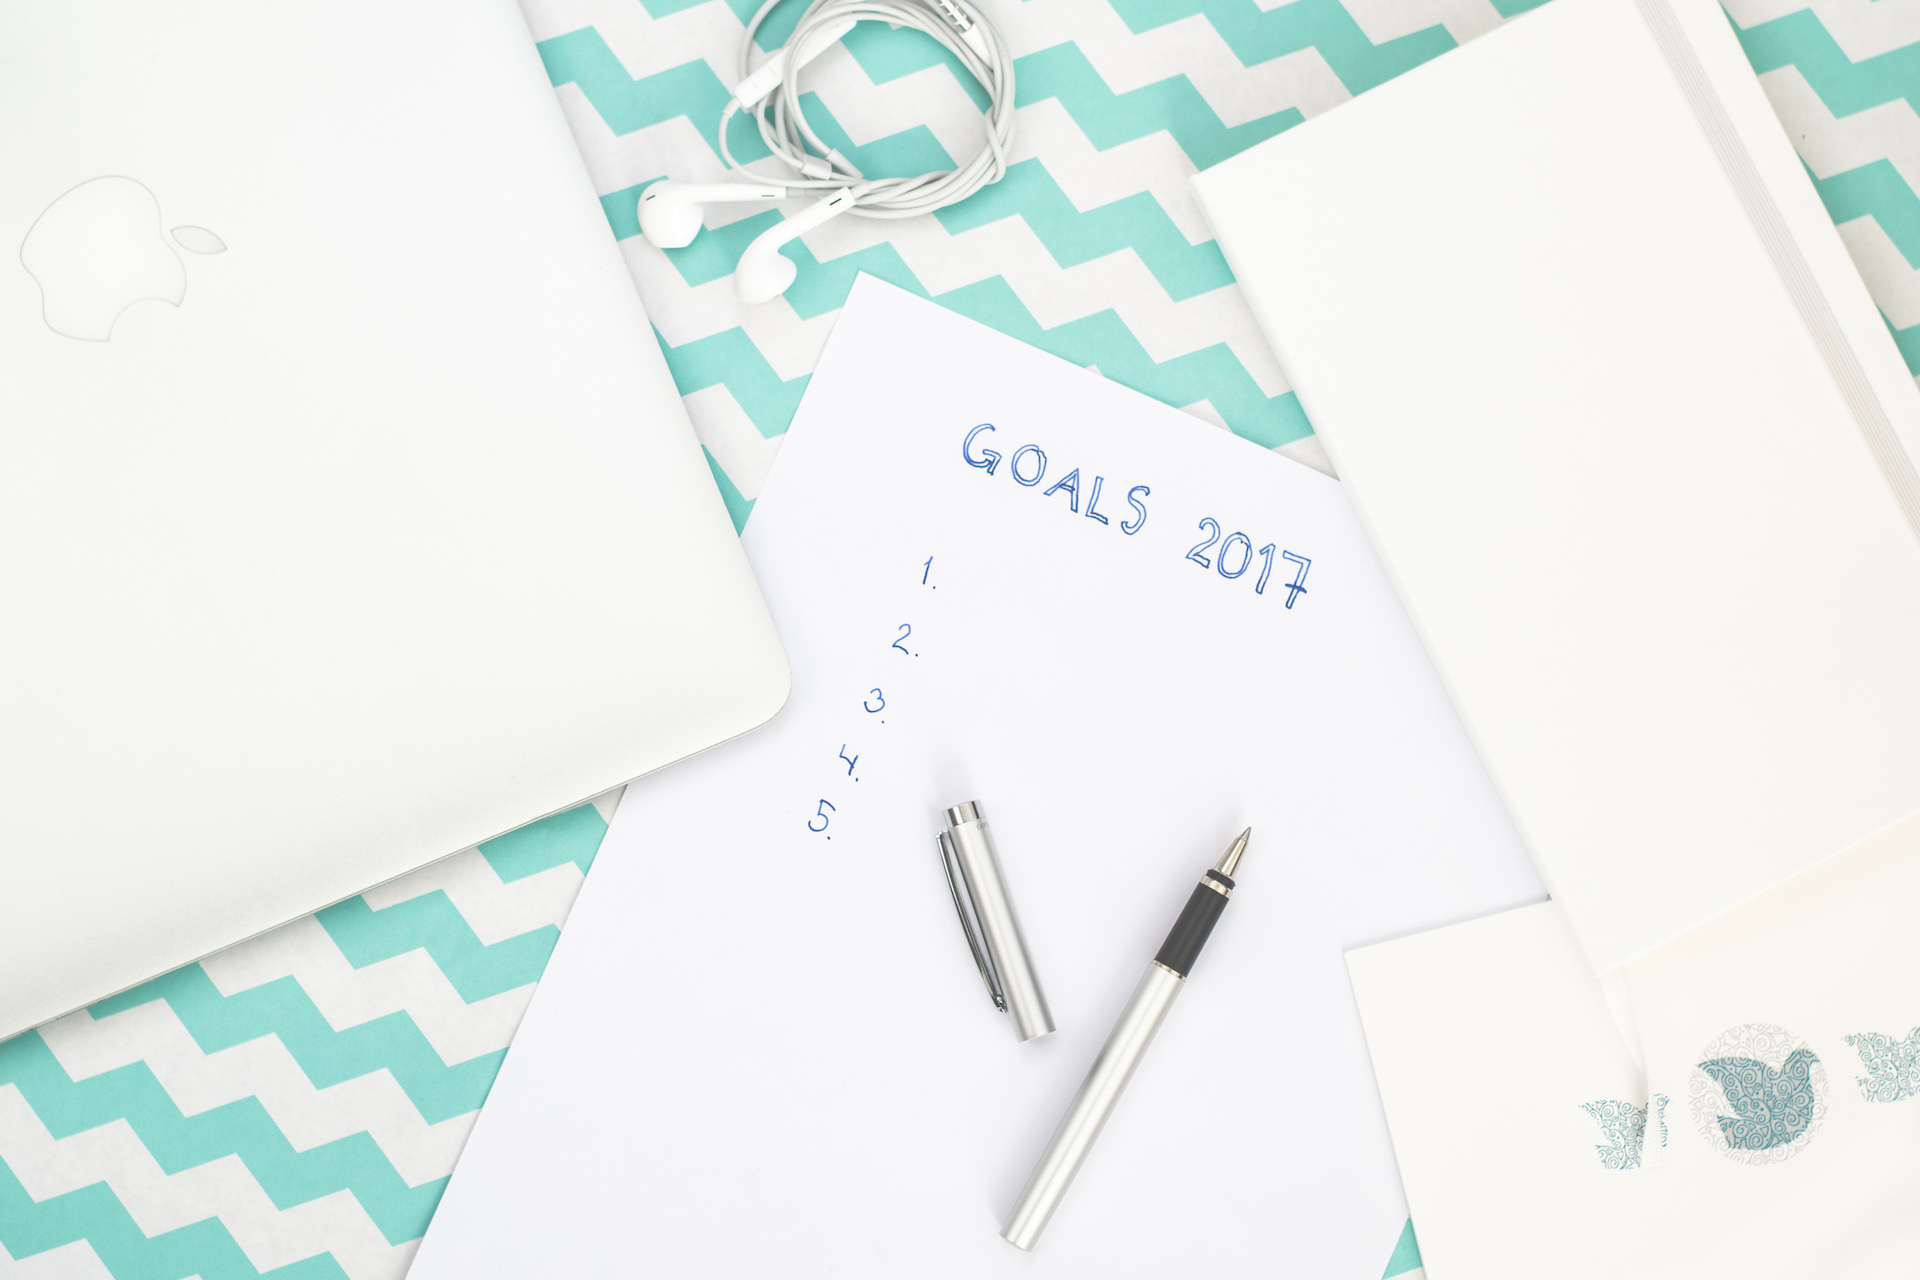 Online Business Success Begins With a Goal